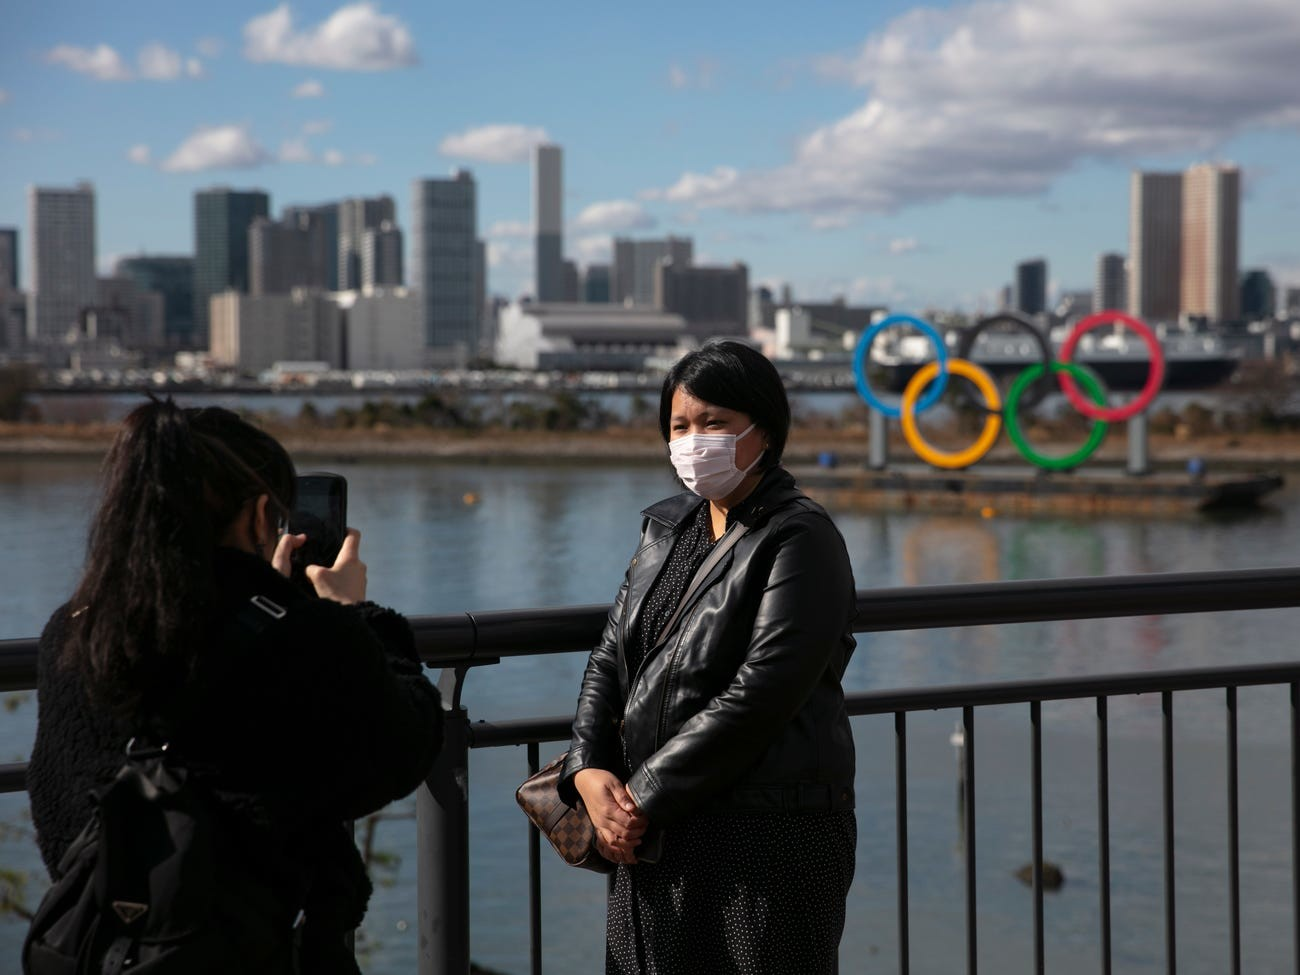 2020 Tokyo Olympics organizers says there is no Plan B for summer games amid coronavirus fears